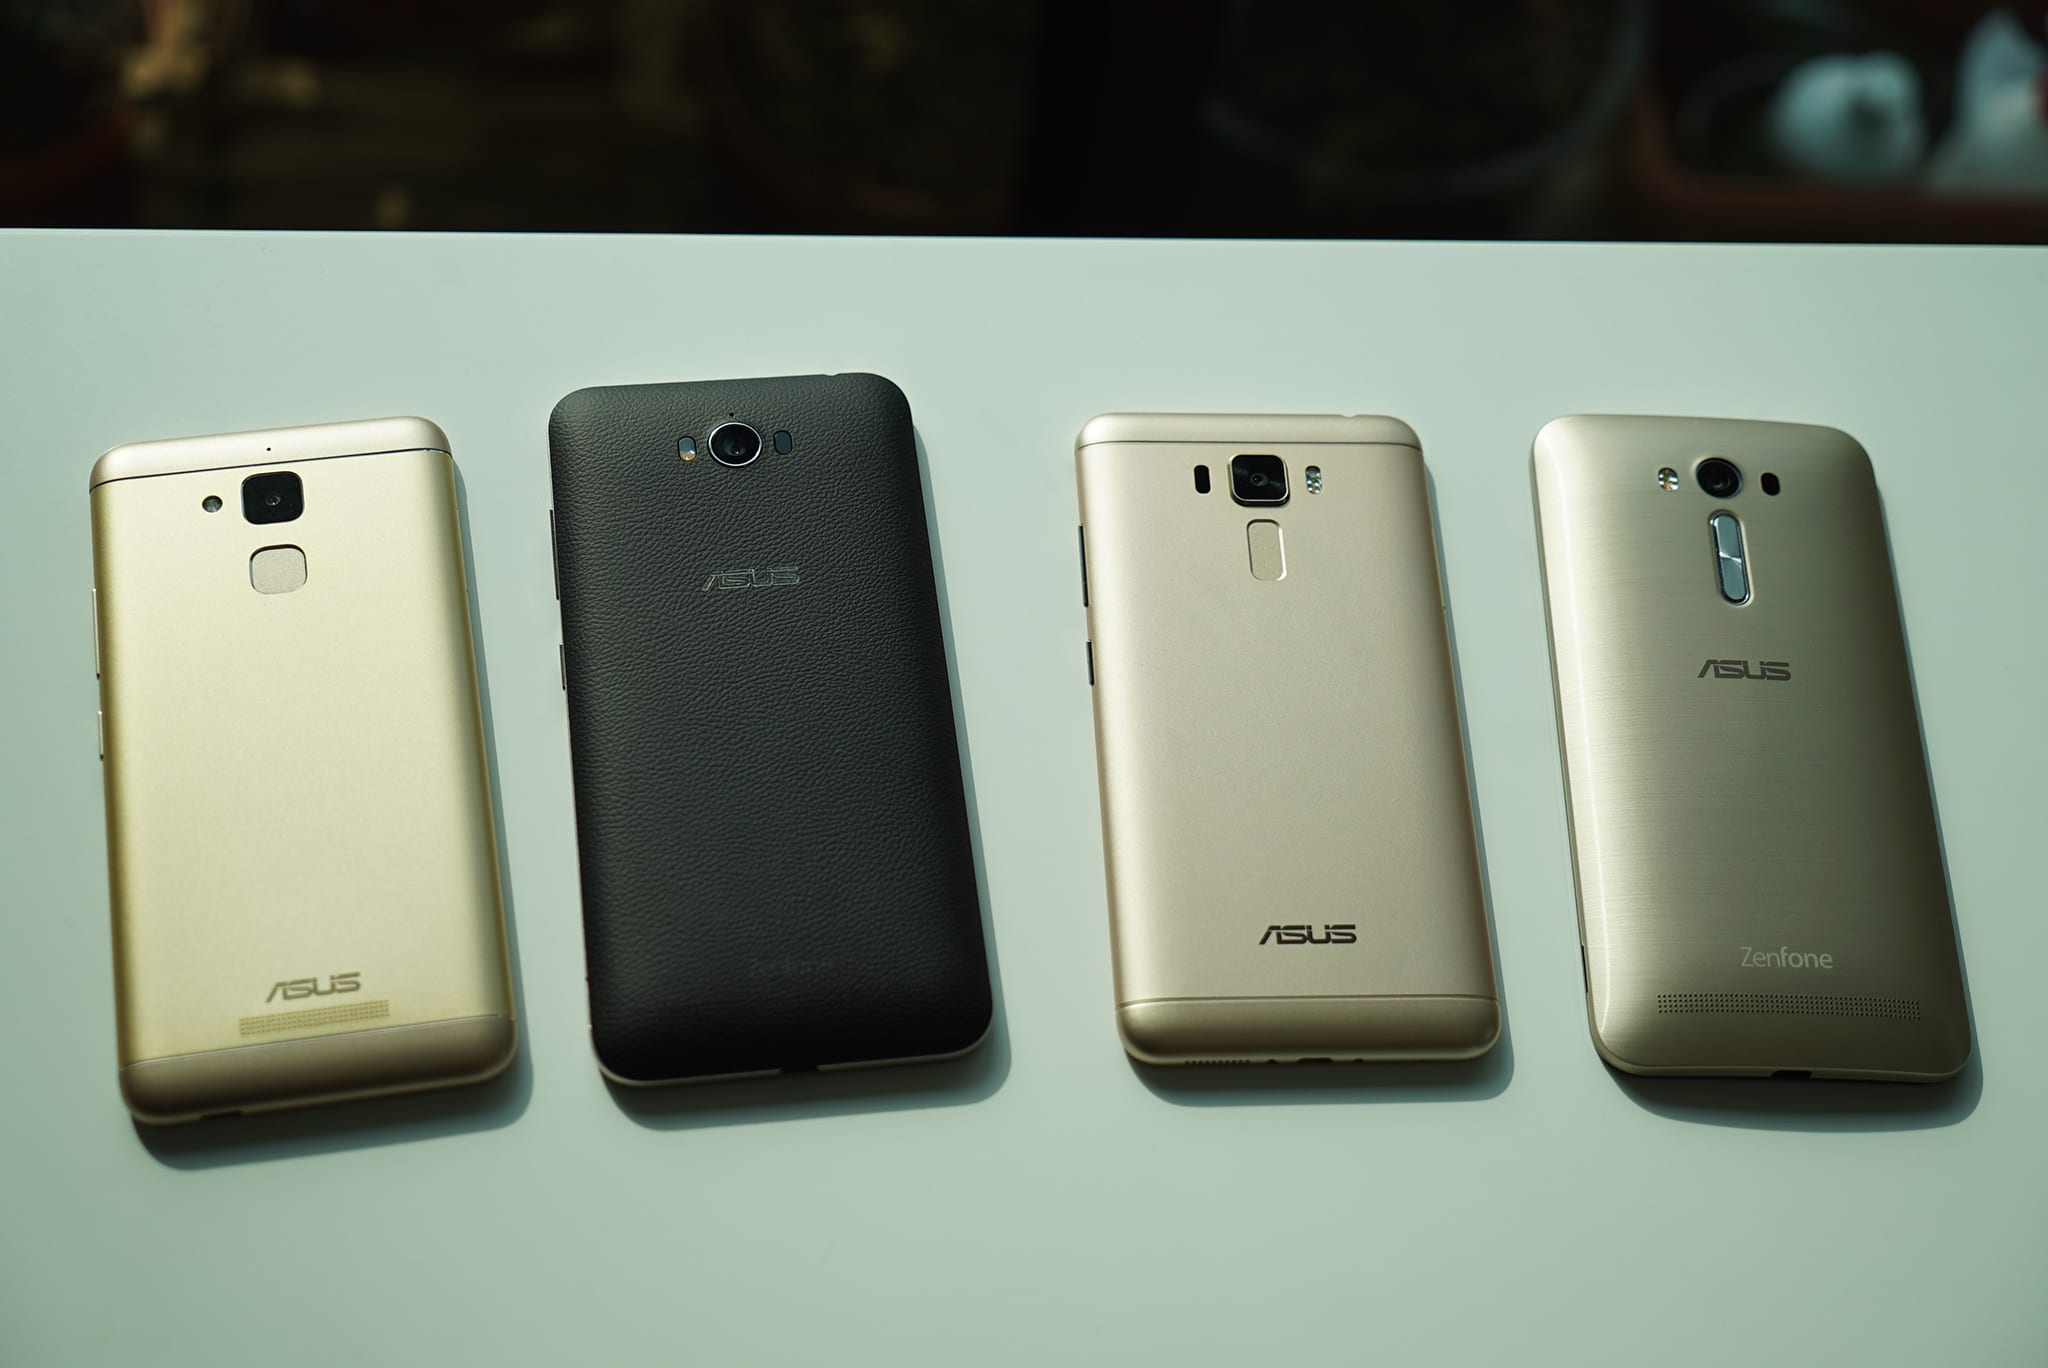 Zenfones old and new. From left to right Zenfone 3 Max, Zenfone Max, Zenfone 3 Laser, Zenfone 2 Laser